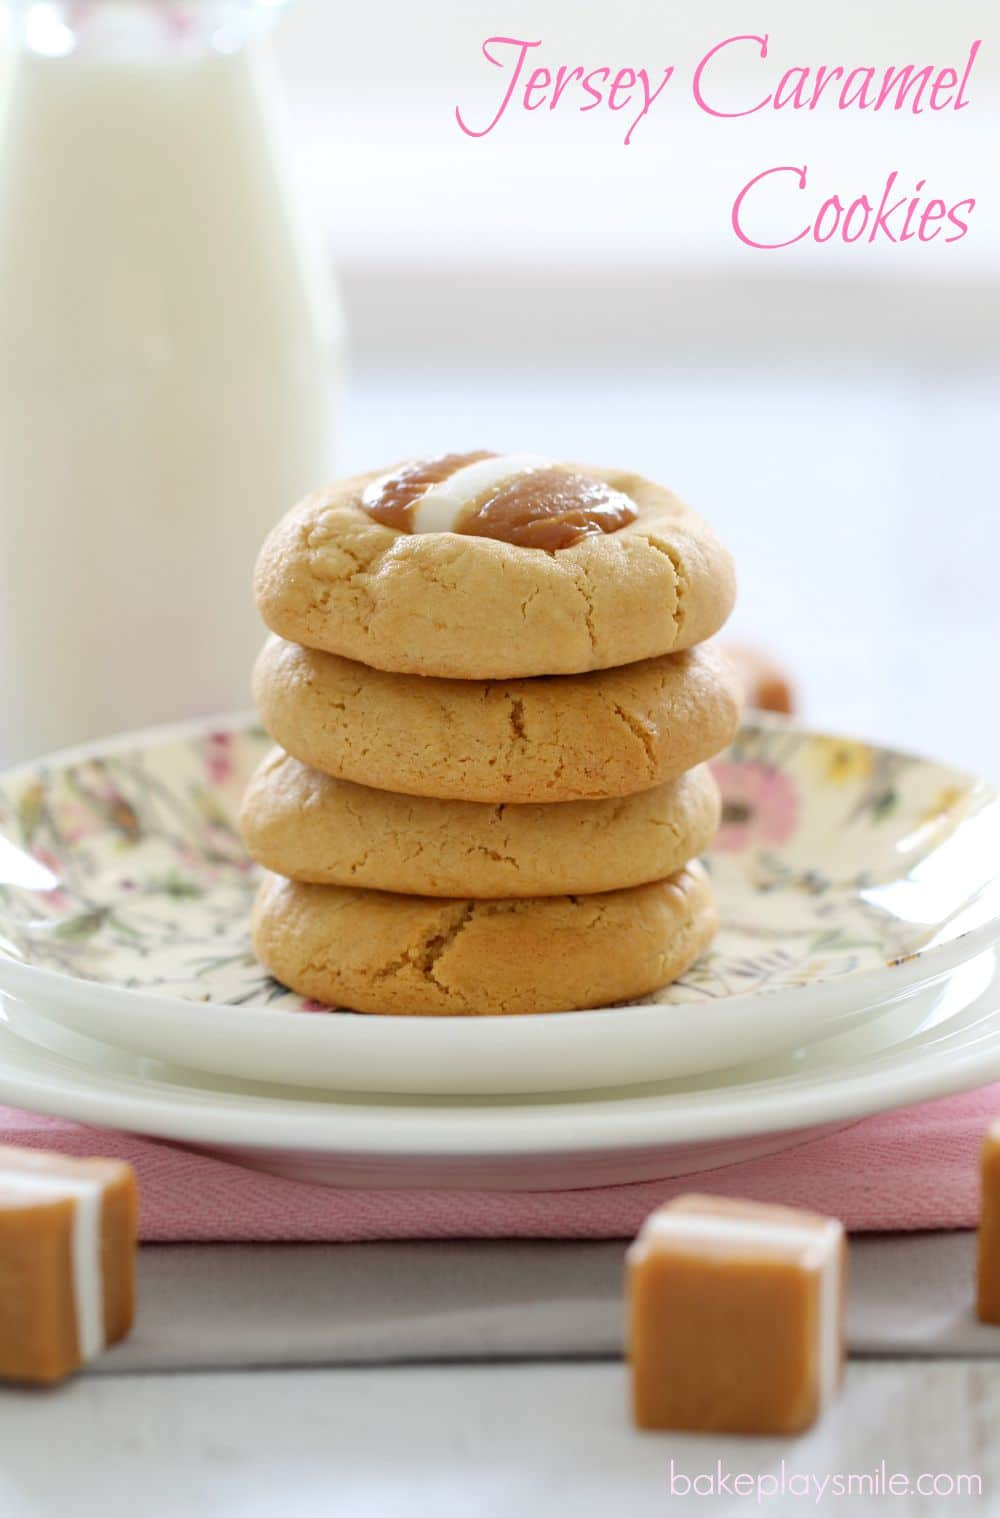 Donna Hay S Jersey Caramel Cookies Bake Play Smile